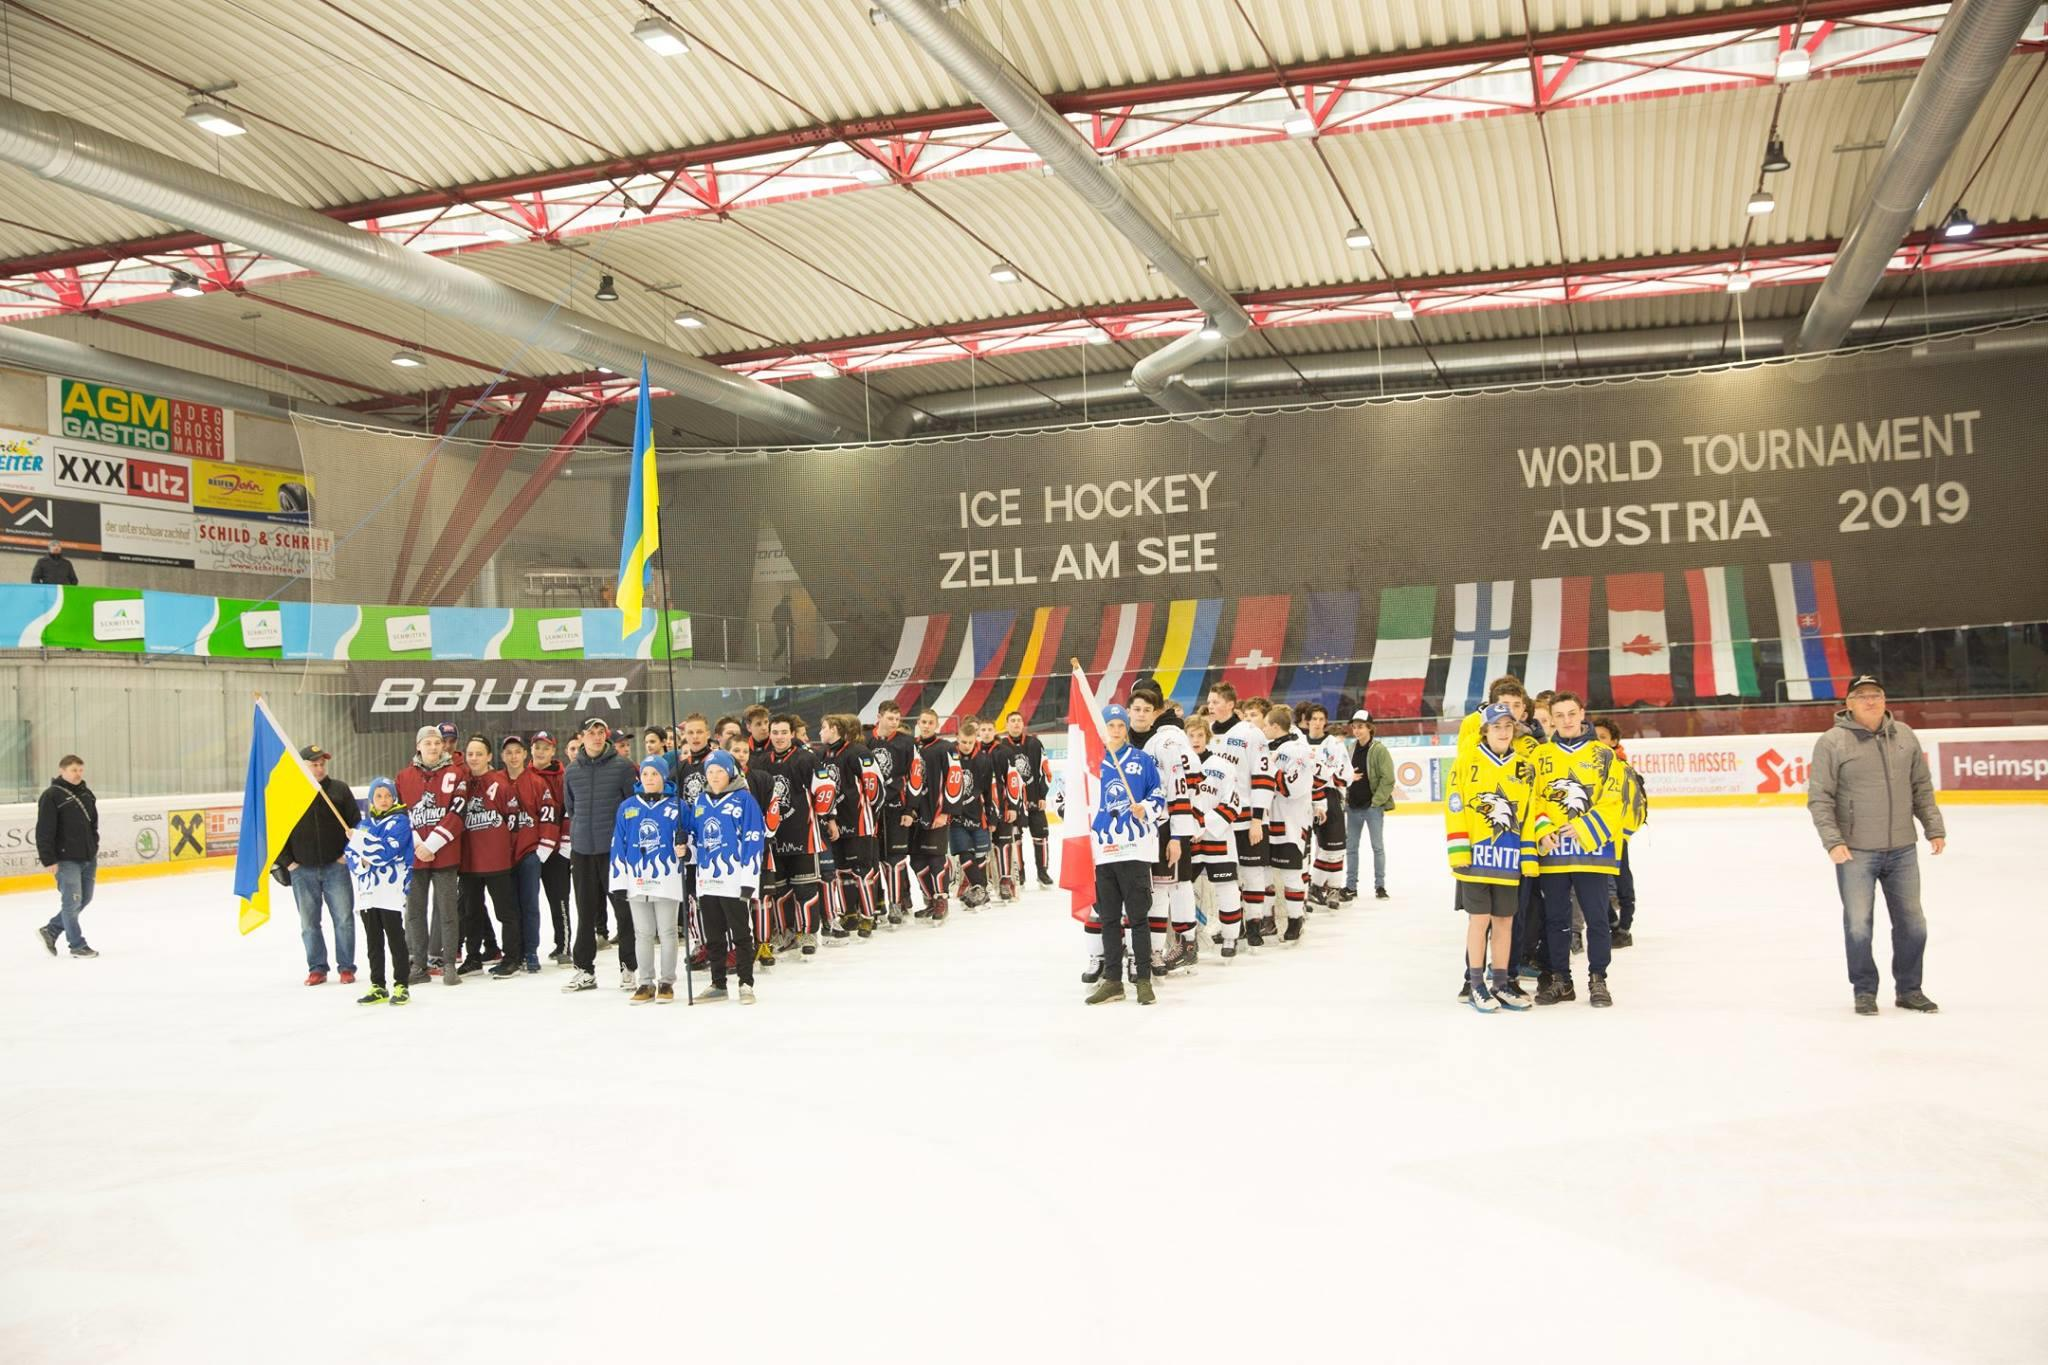 Icehockey World Tournament 2019 - 19/04/2020